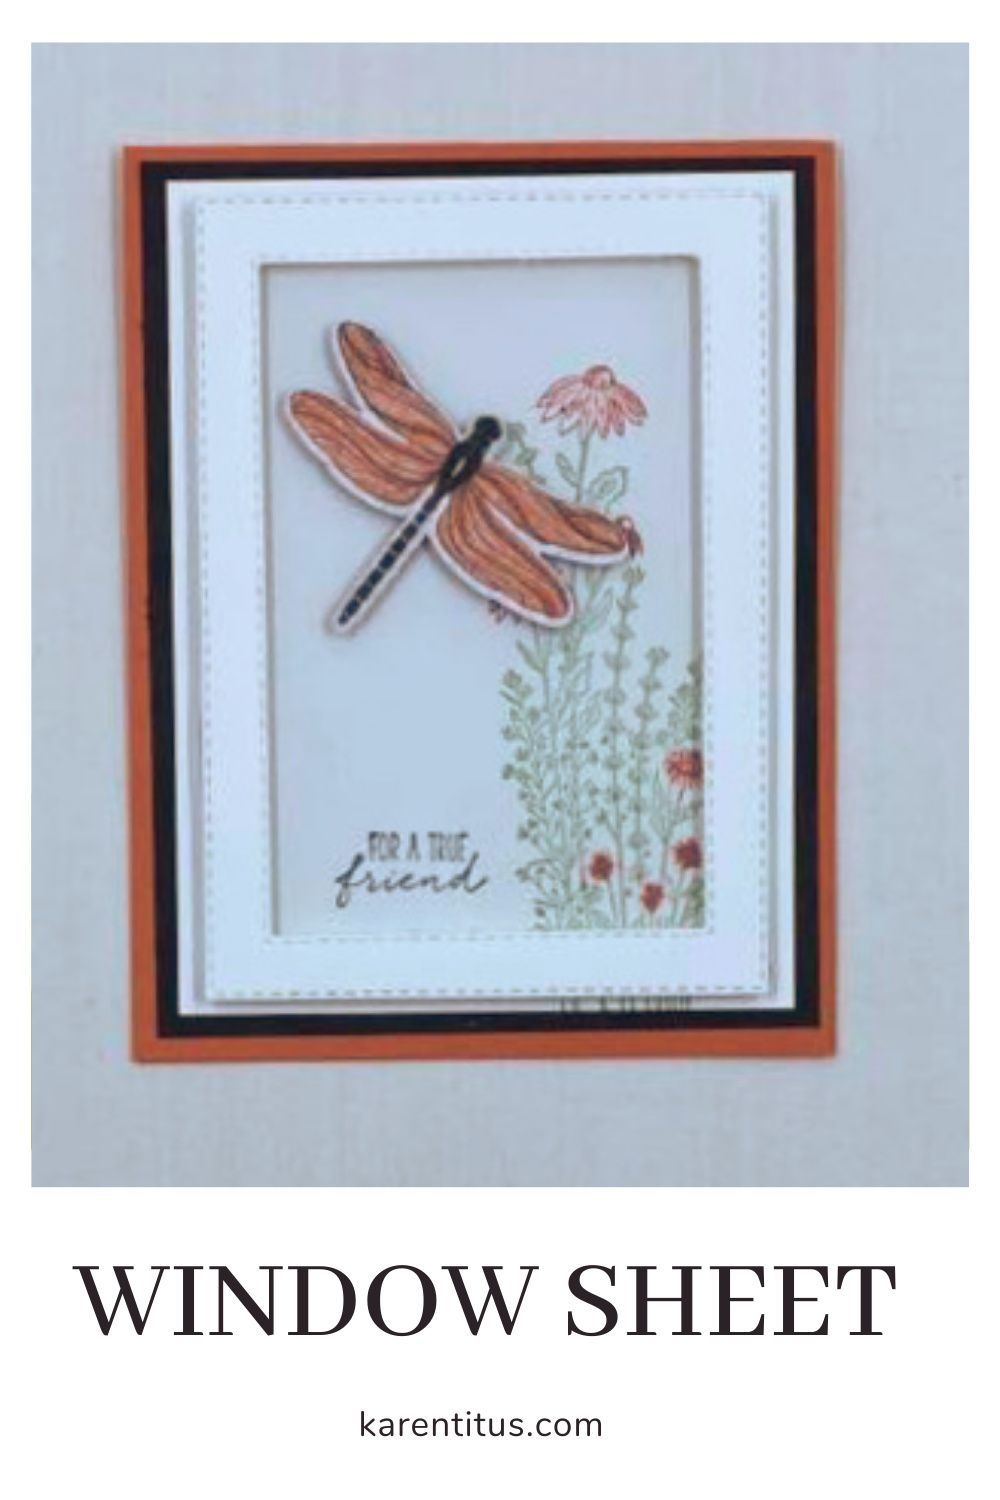 Using Window Sheets in Your Card Making